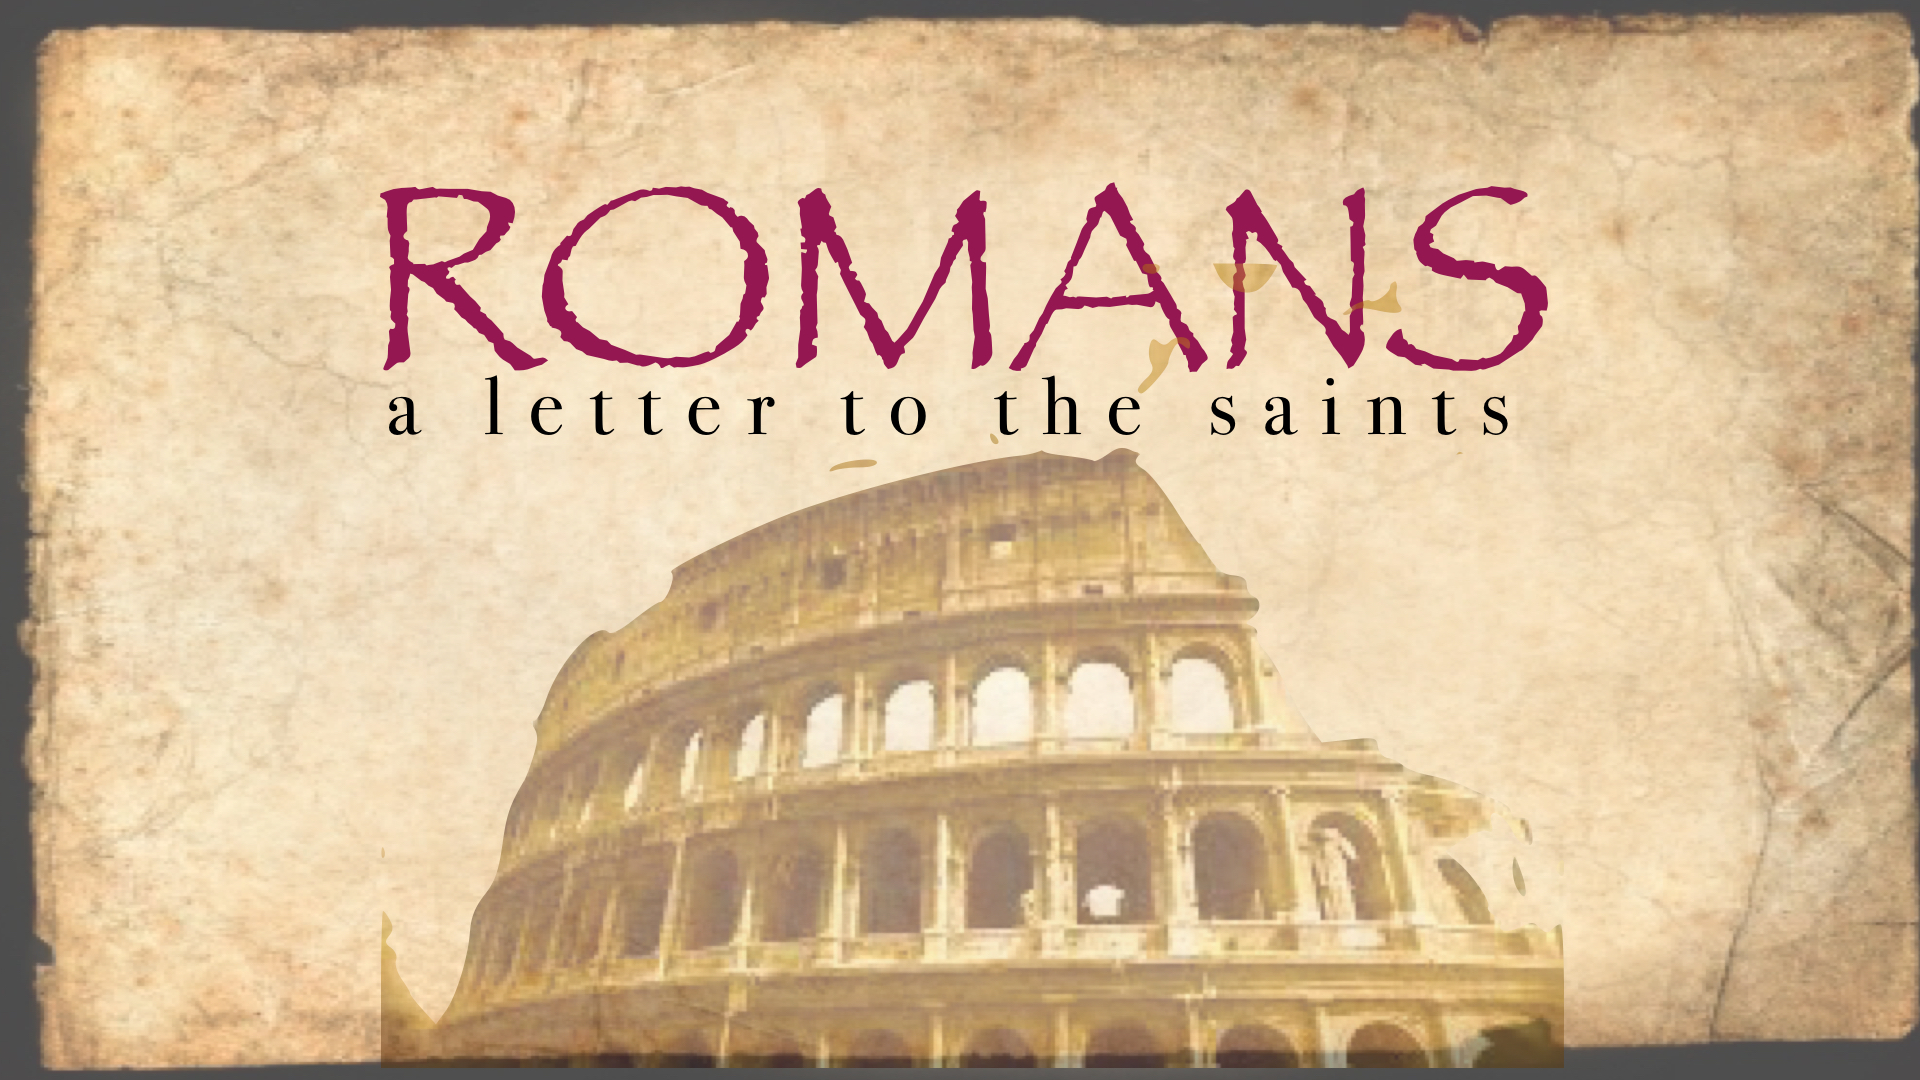 romans 8 1 17 as a summary of Romans 8 stands tall among beloved chapters of the bible like hebrews 11 or psalm 23 because it gives us hope, comfort, and encouragement in romans 8, paul shares with us the grounds for his confidence in god.